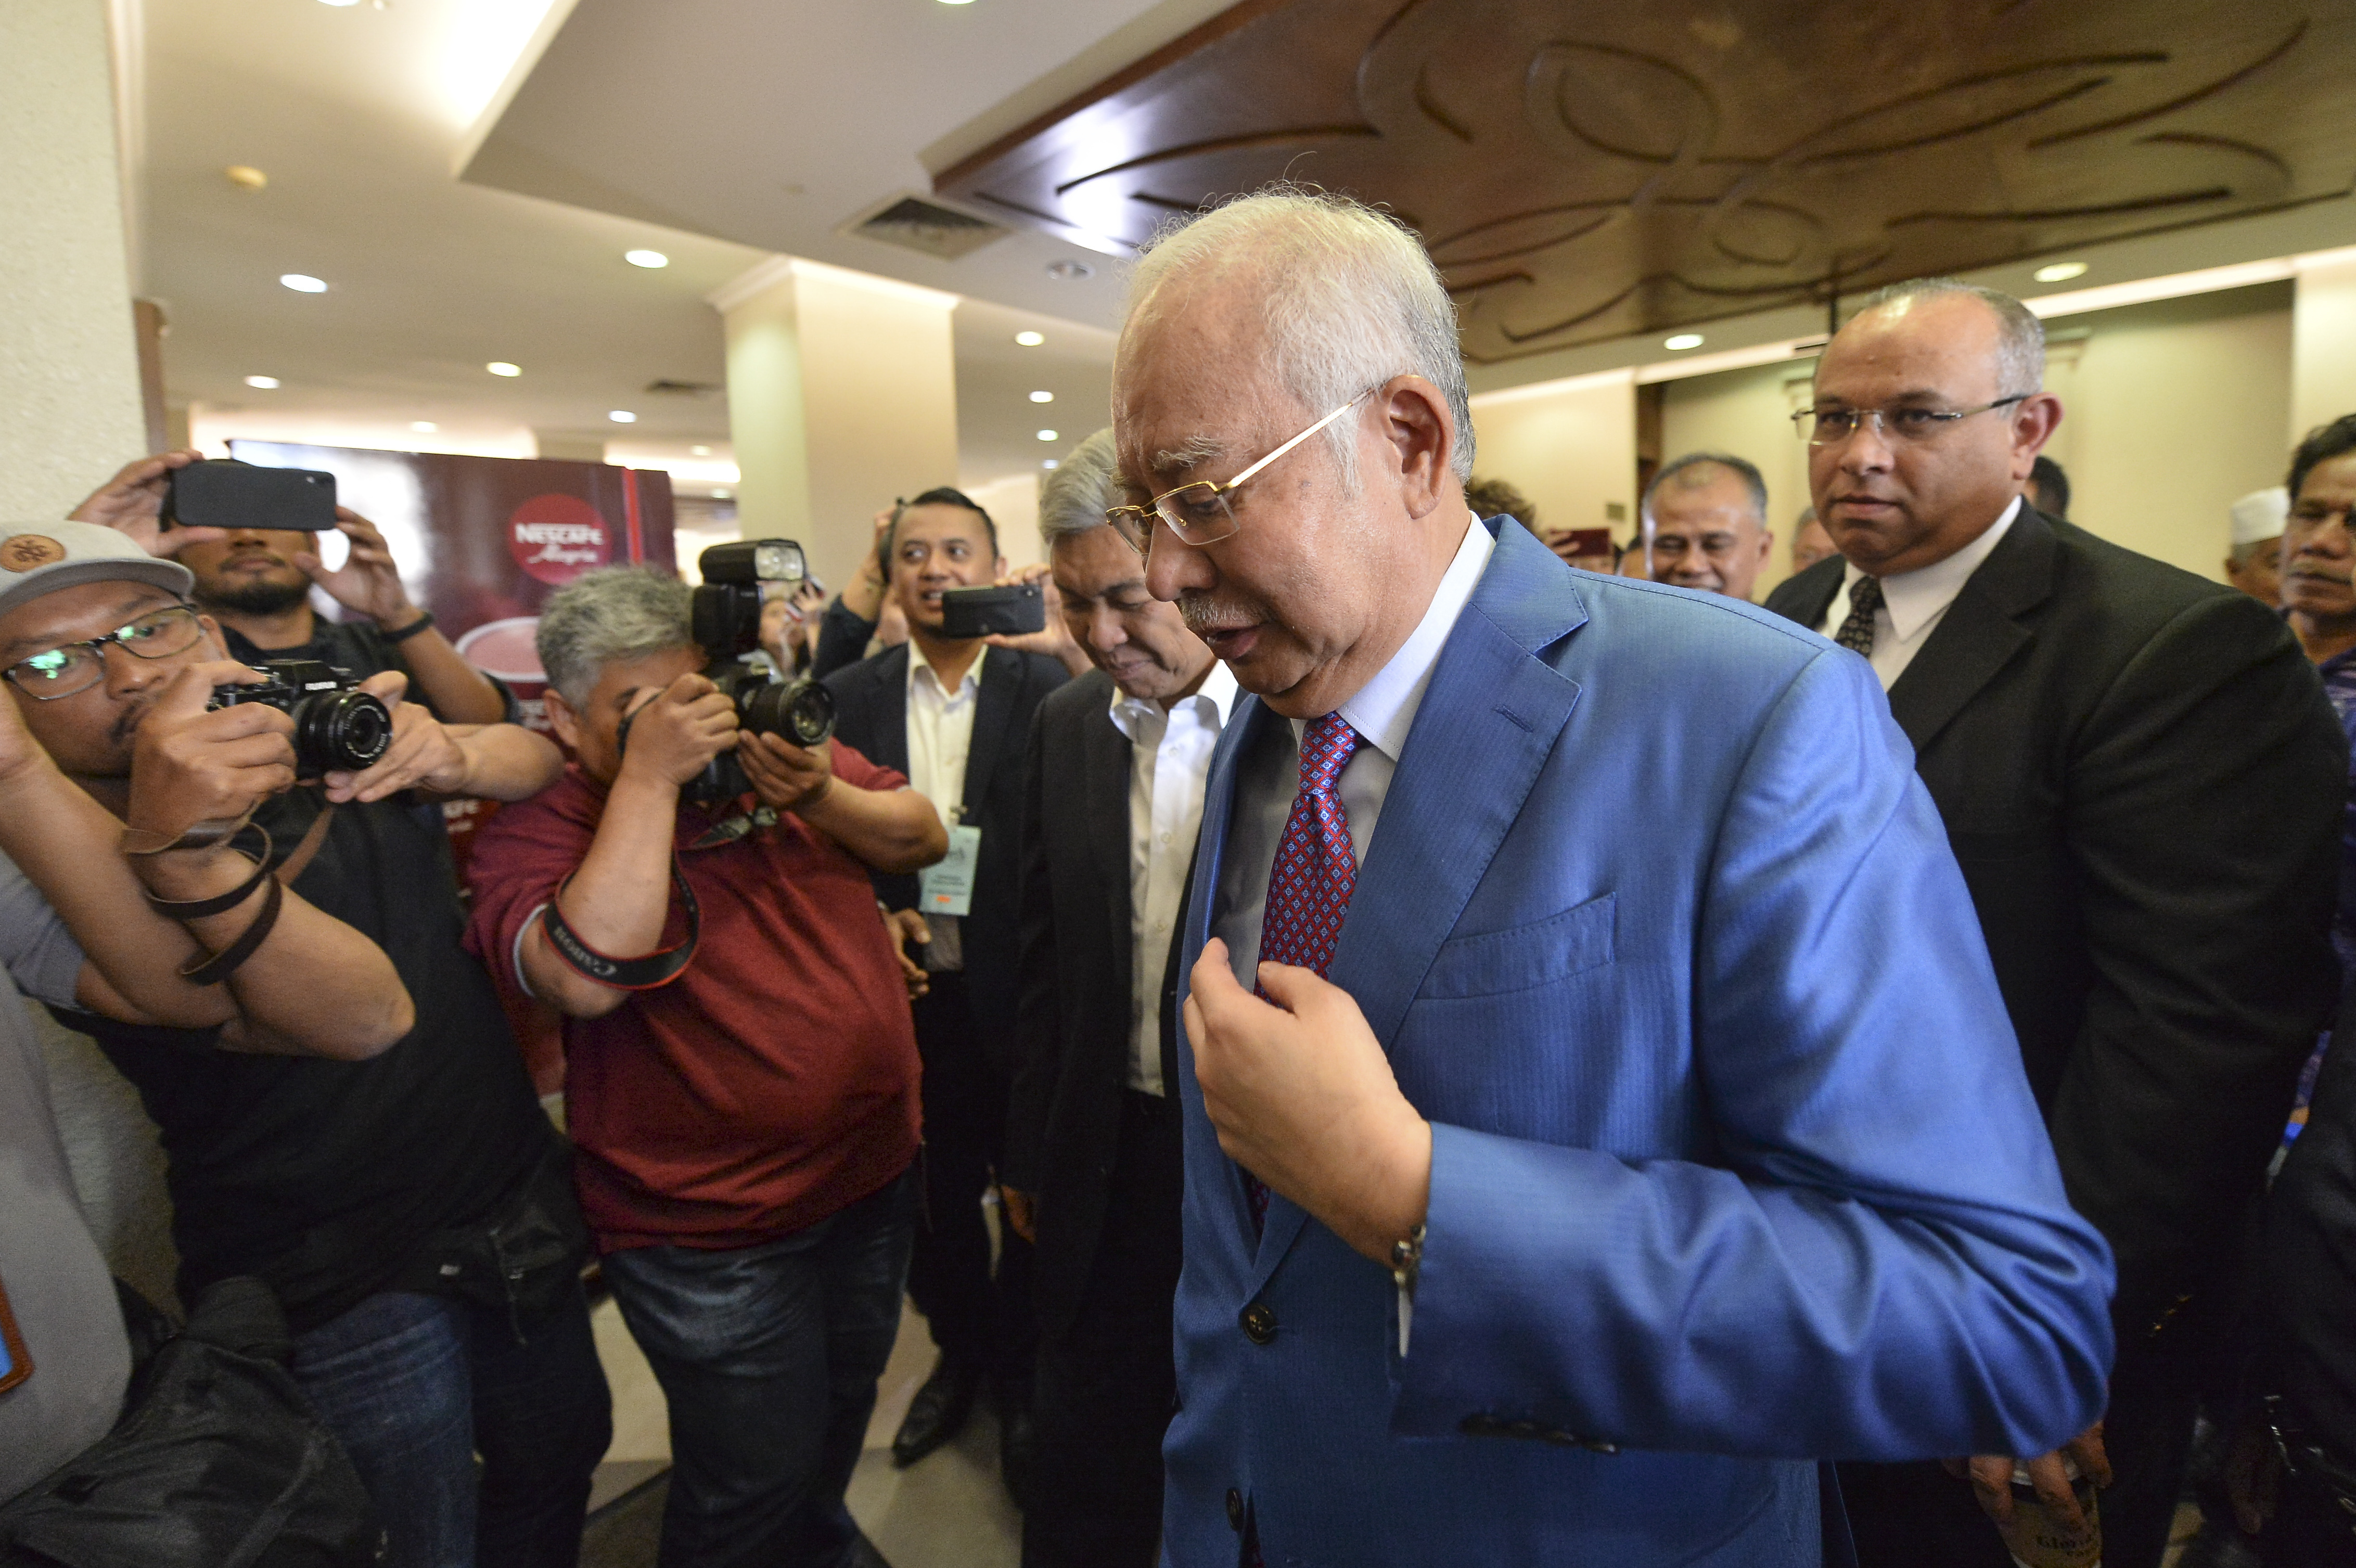 Former Malaysian Prime Minister Najib Razak, center, walks out from the courtroom at the court house in Kuala Lumpur, Malaysia for his corruption trial Tuesday, Dec. 3, 2019.